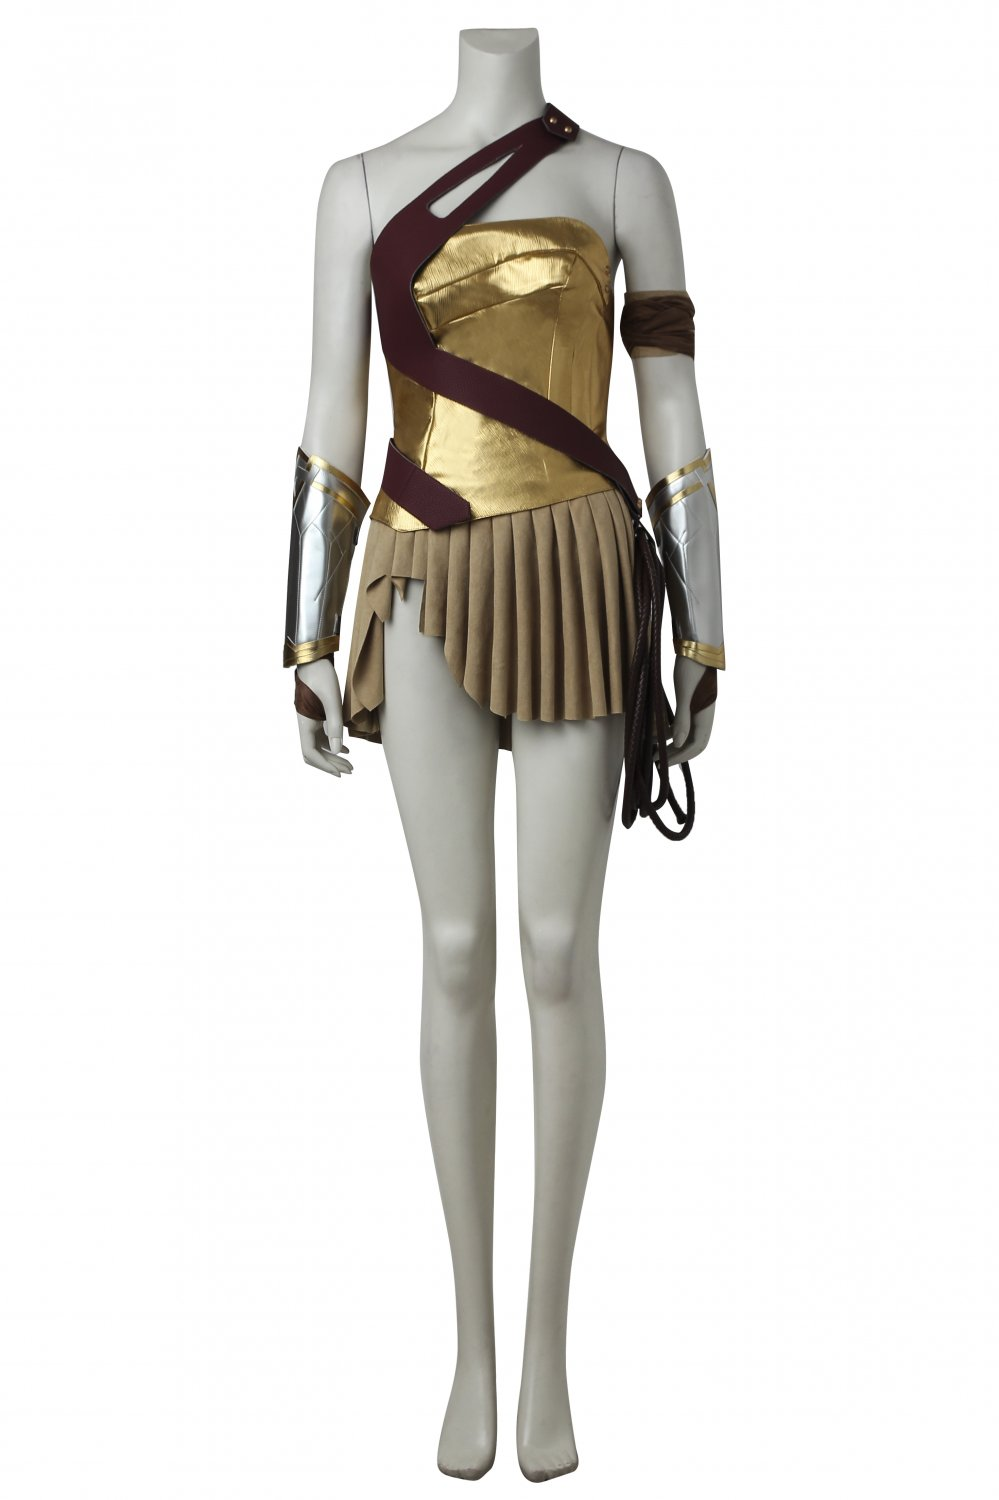 Wonder Women Diana Dress Costume Cosplay Custom Made Adult's Dress Cosplay for Party